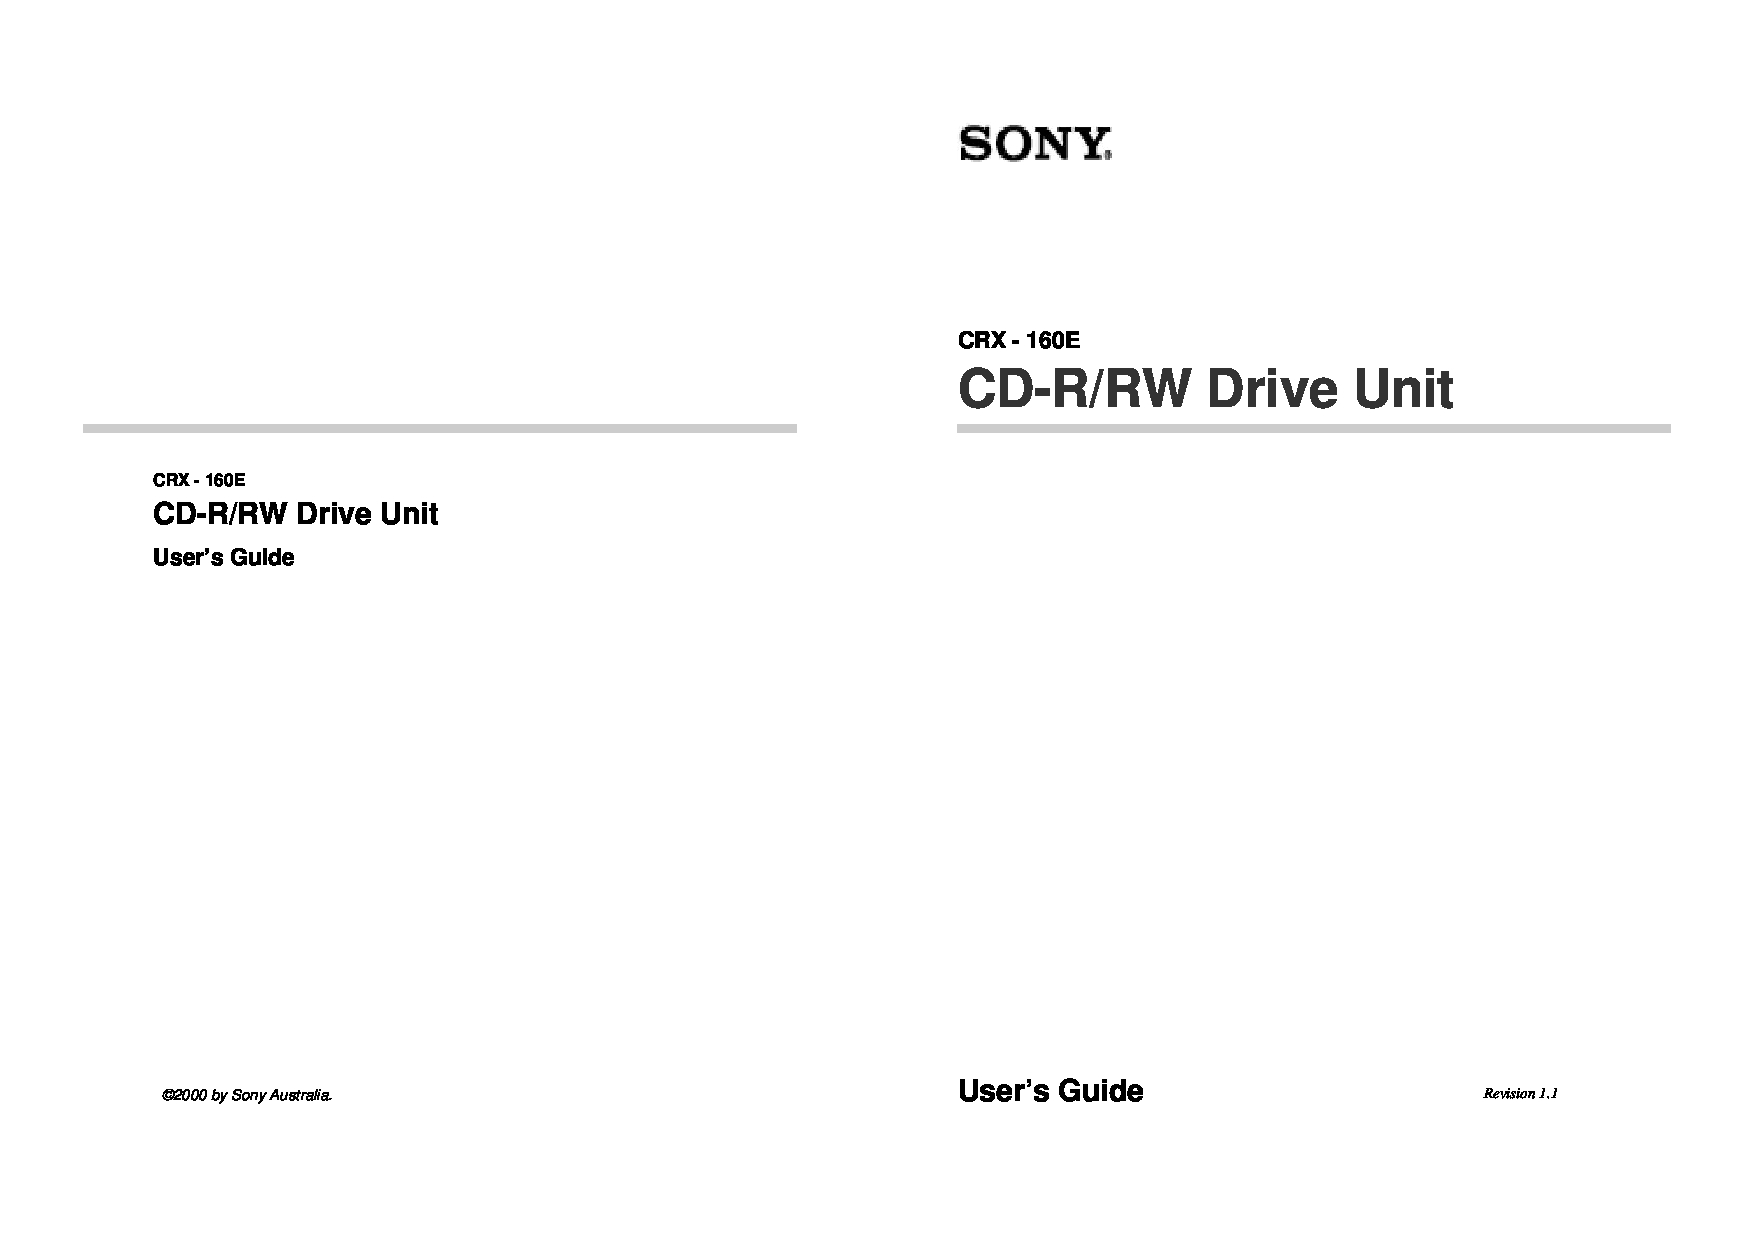 Sony CRX - 160E Manual